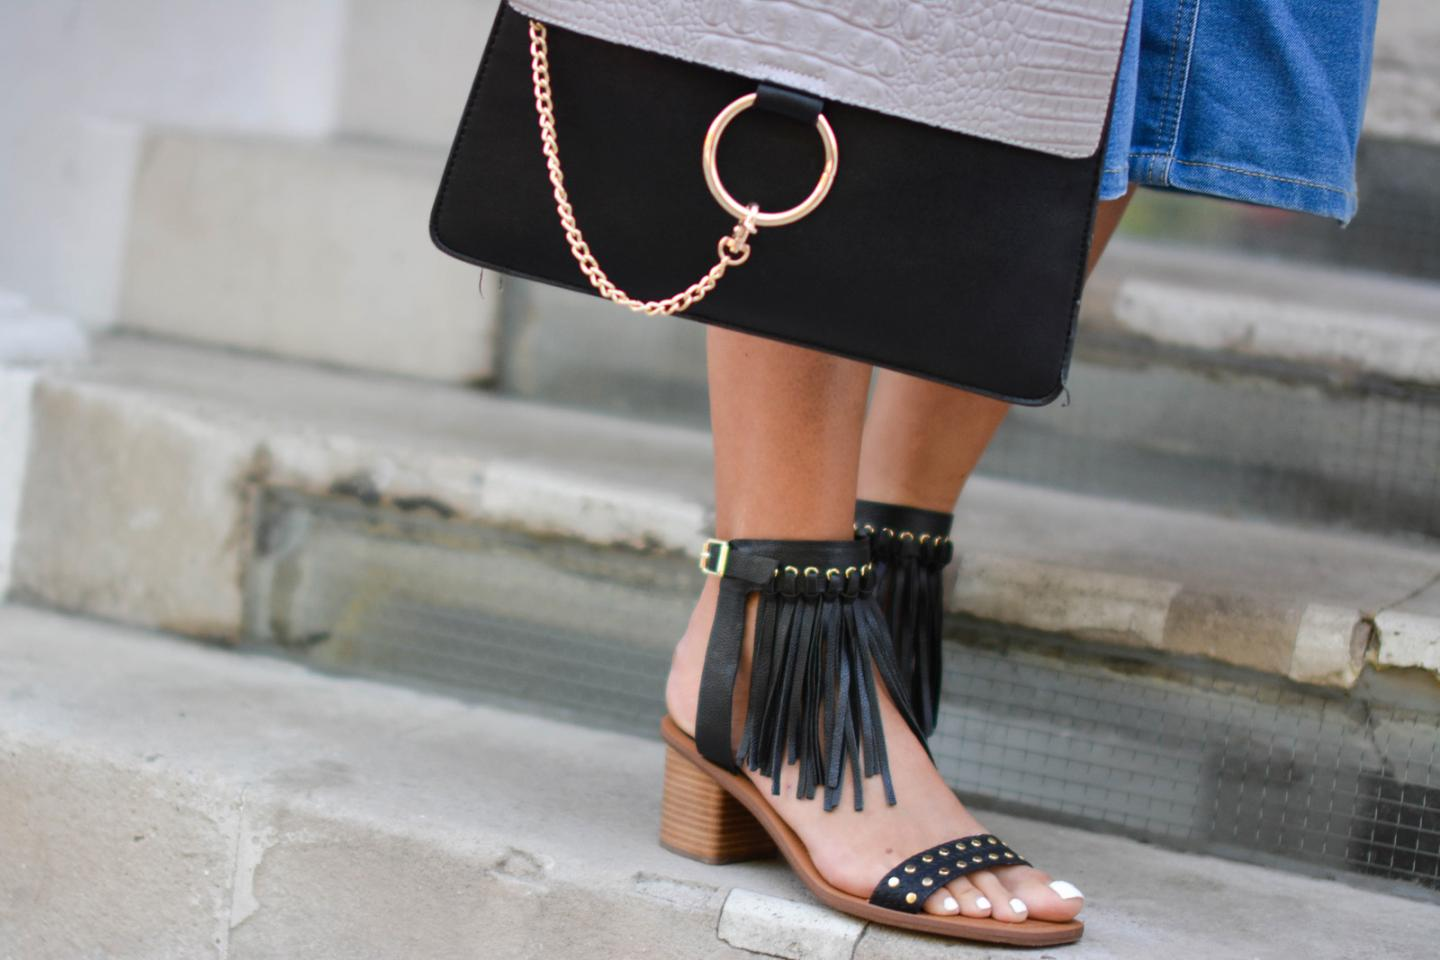 EJSTYLE - Emma Hill wears Aldo fringe studded sandals, Chloe Faye dupe bag, London Street Style, summer fashion, SS15